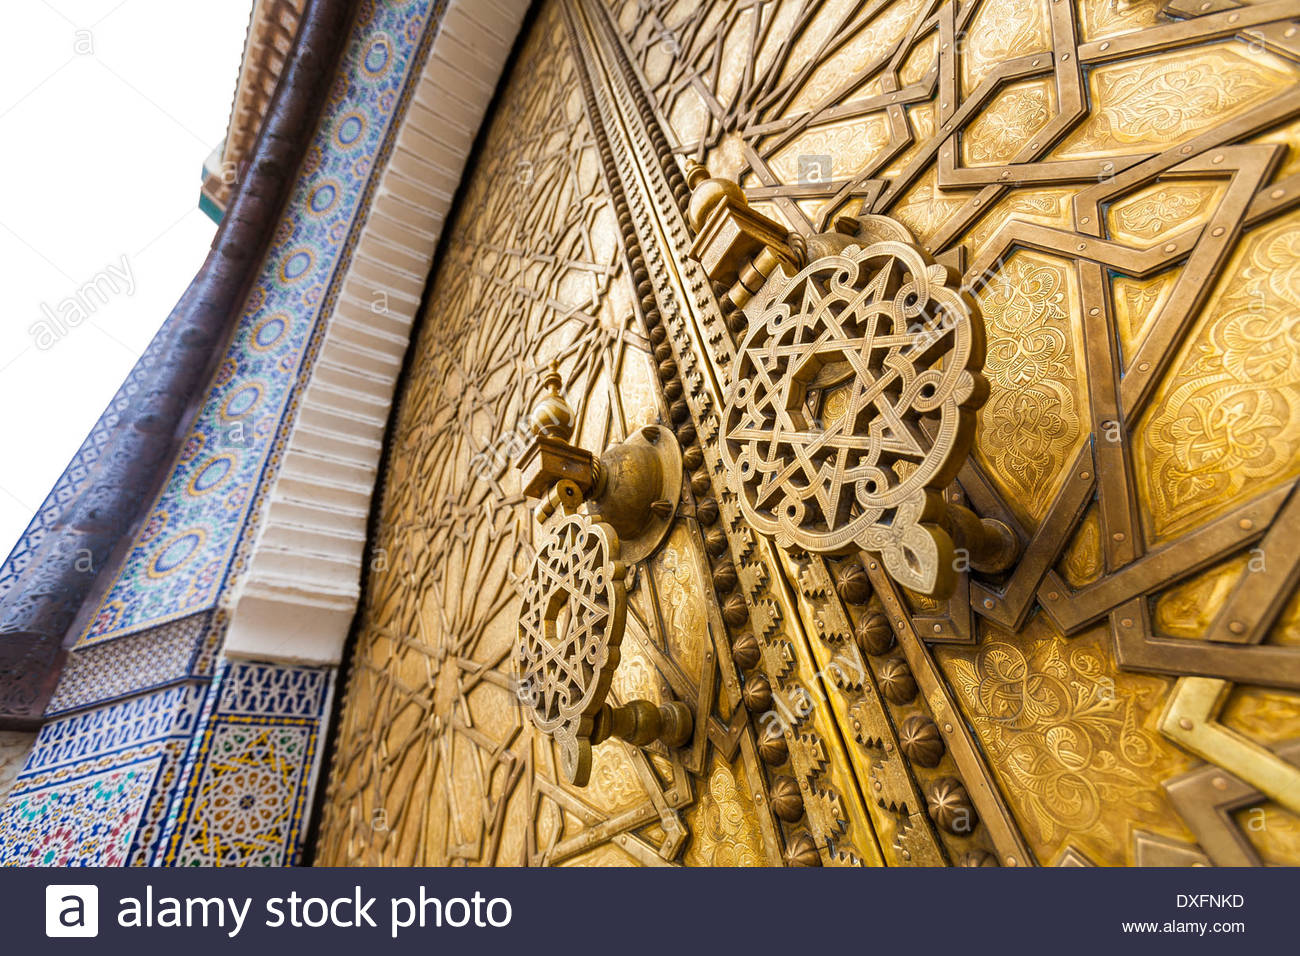 Detail of Royal Palace metal door with door handle - close-up - Morocco - Stock Image